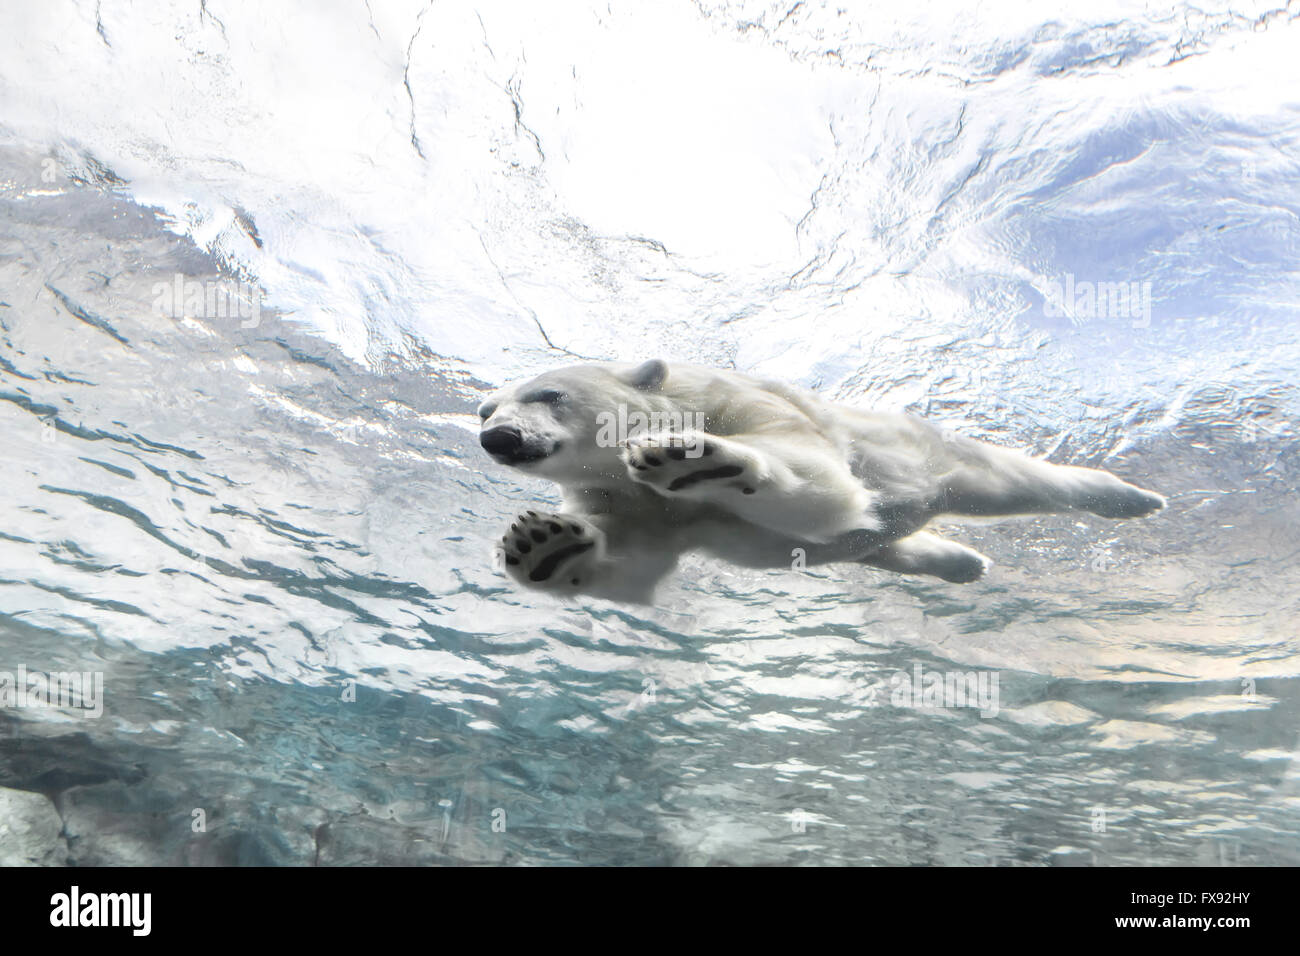 polar bear swimming underwater at the journey to churchill